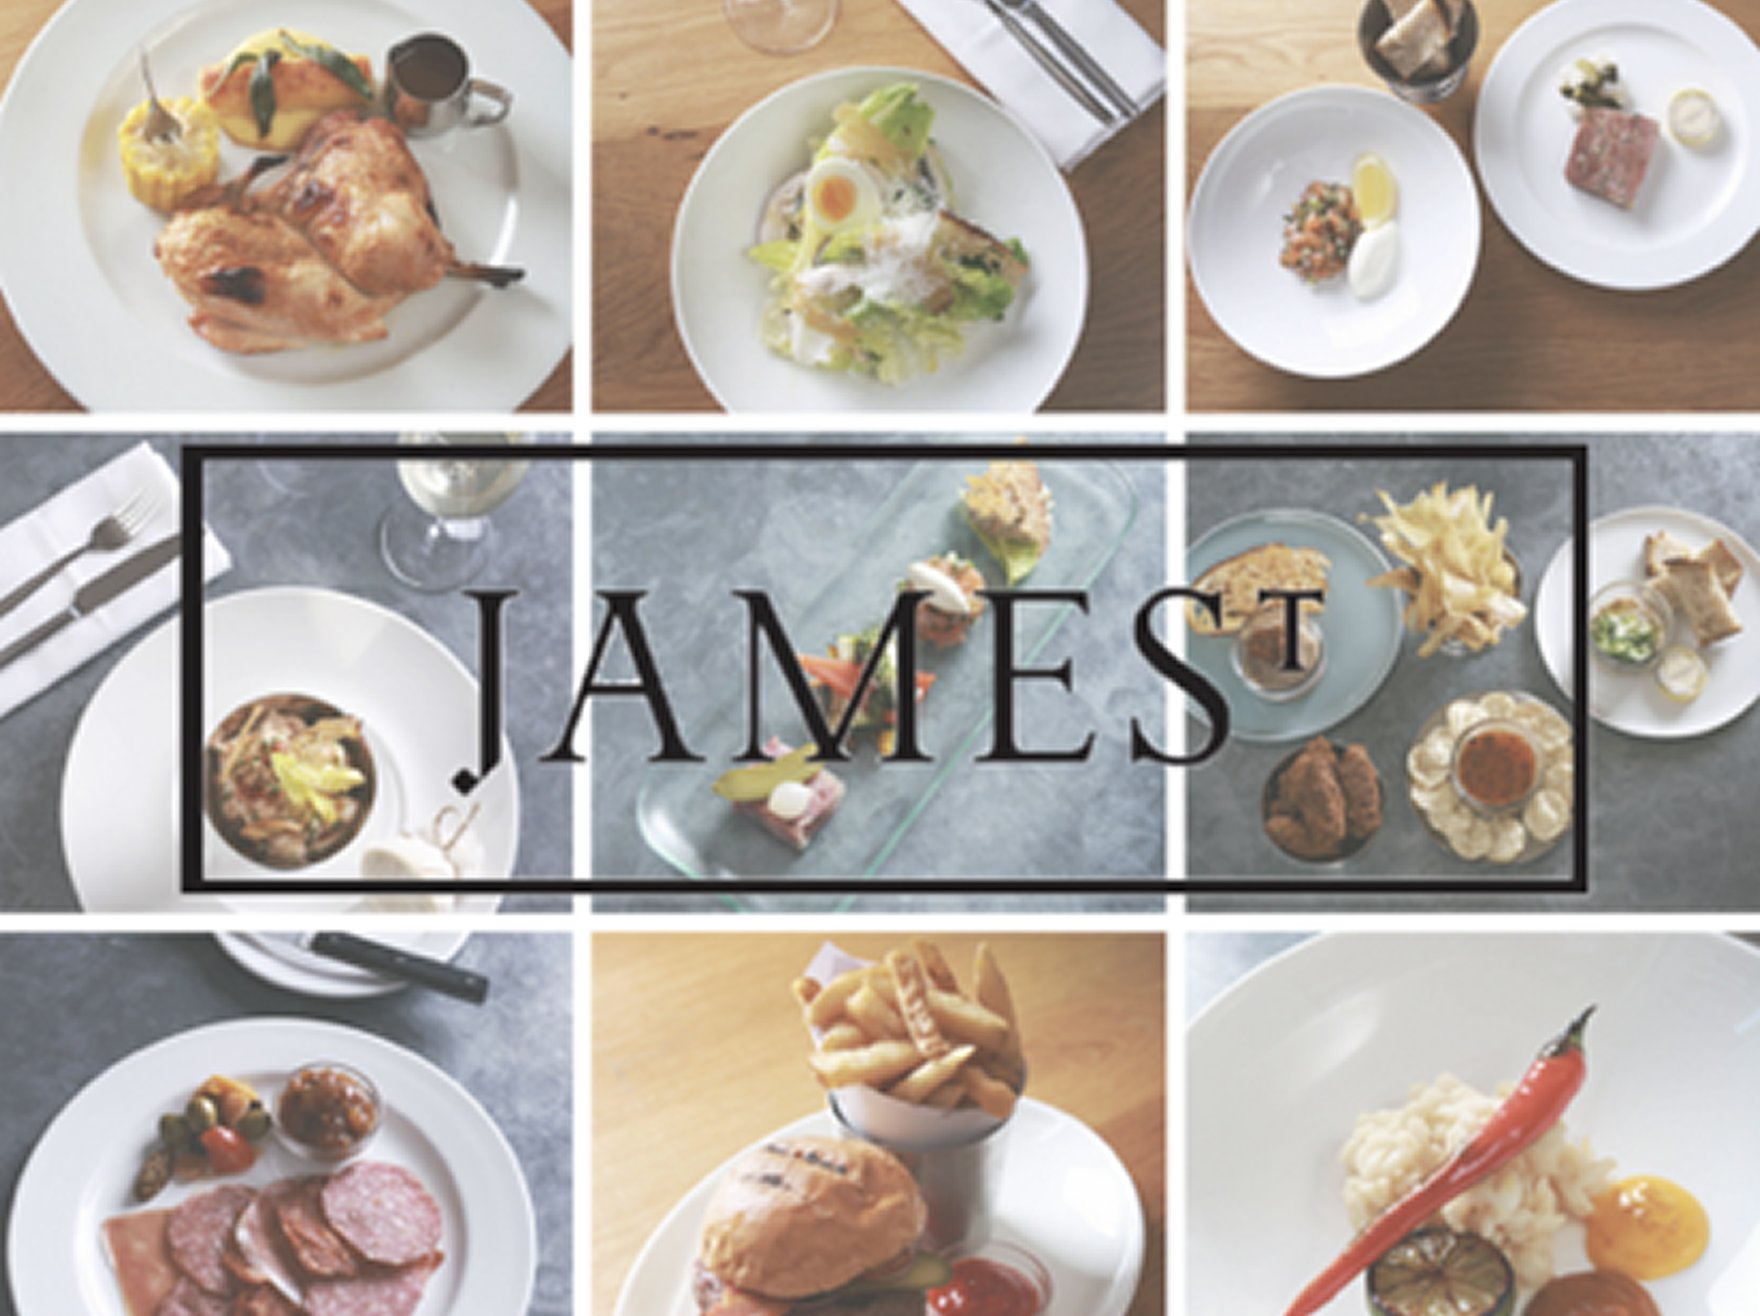 James St. New Room, New Menu, New Look launched